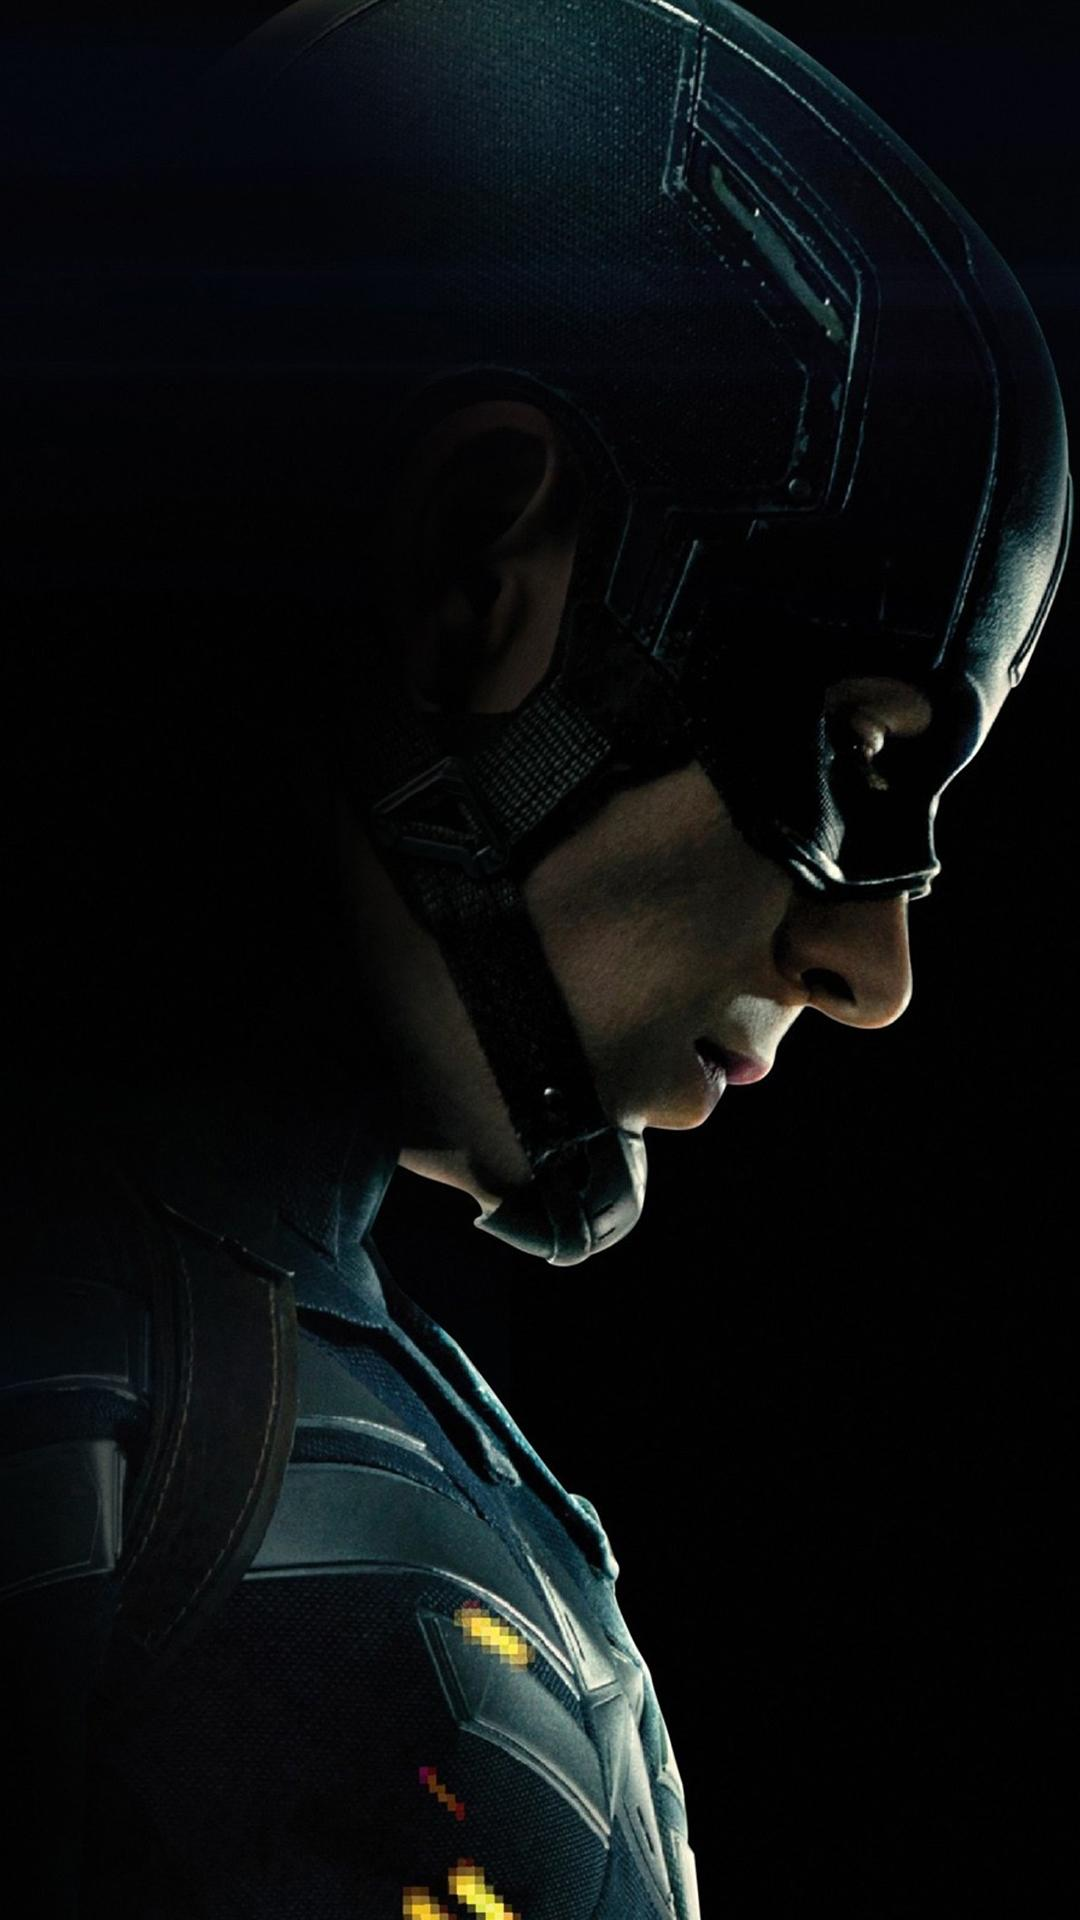 Captain America: Civil War, Hd Wallpapers & backgrounds Download